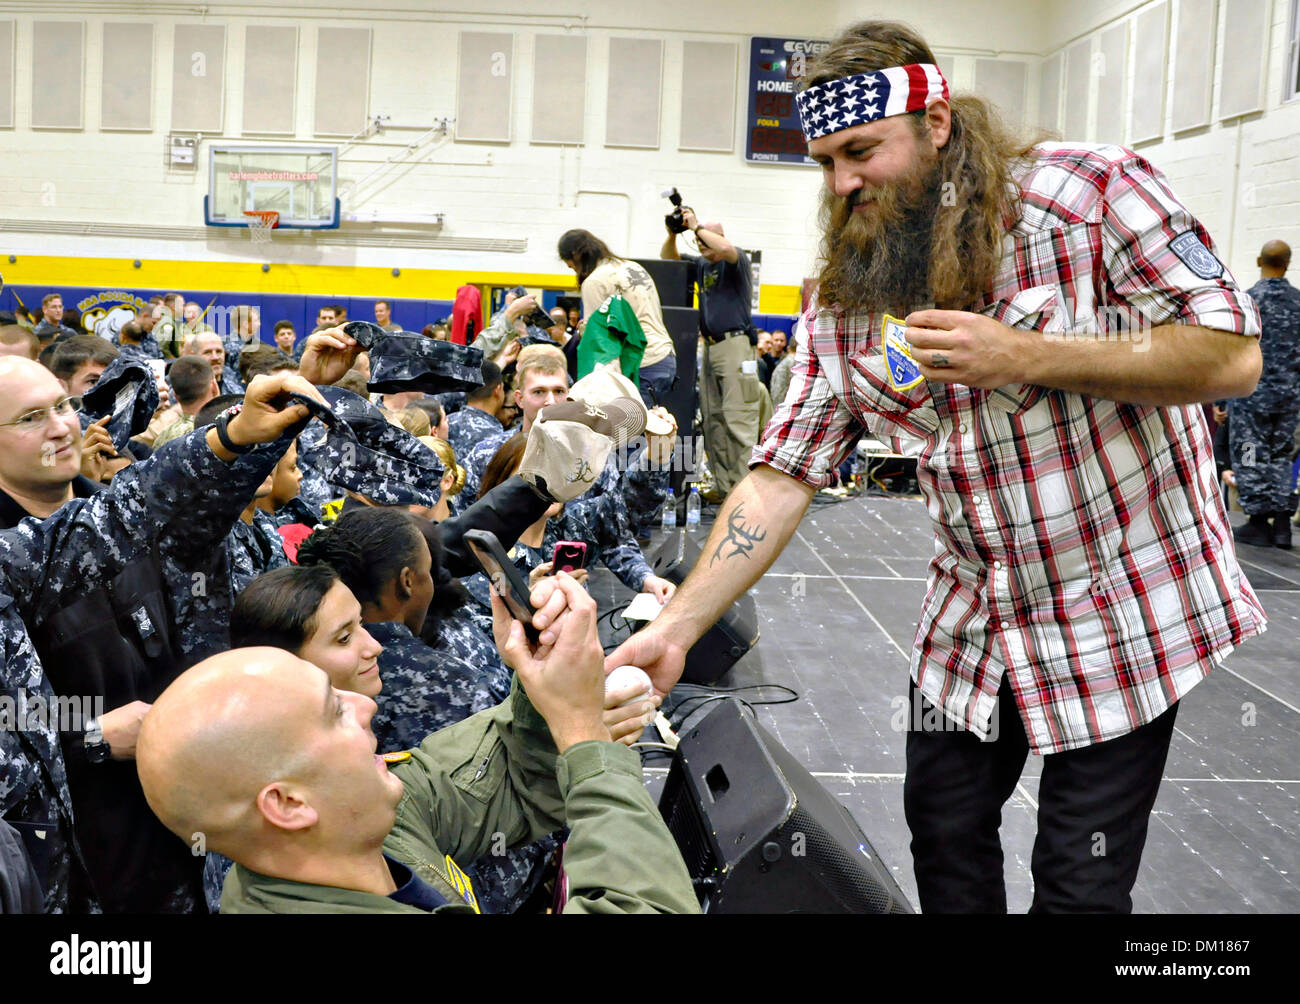 Duck Dynasty reality television star Willie Robertson signs autographs and poses for photos after a USO performance at Naval Support Activity December 7, 2013 in Souda Bay, Greece.  Robertson's visit is part of the annual USO holiday tour to help boost the moral of service members deployed overseas. - Stock Image